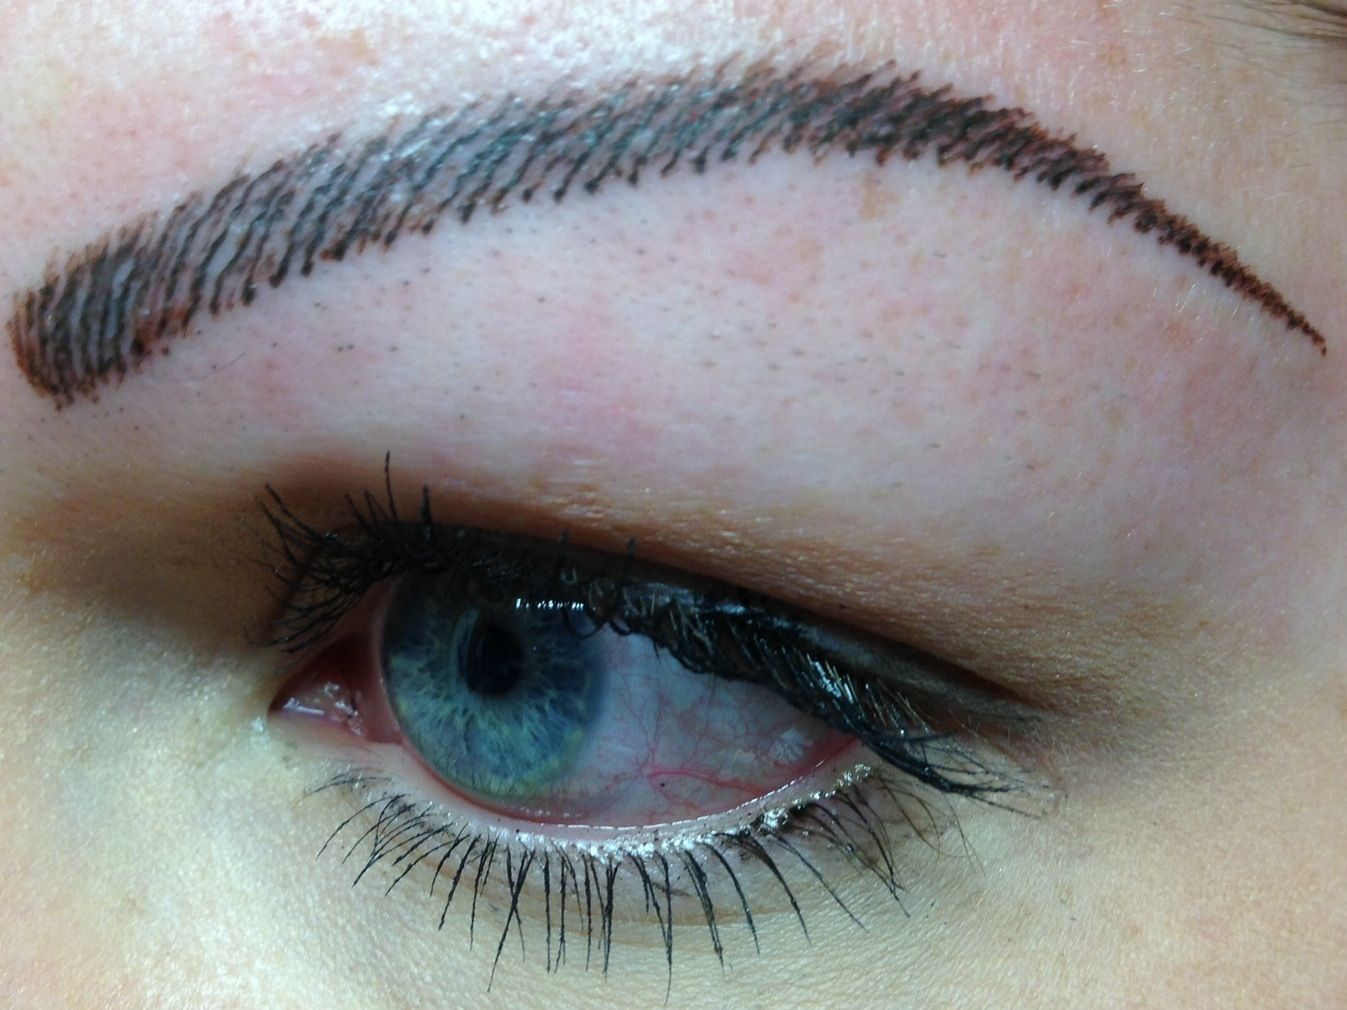 Tattooed eyebrows need to make strokes more natural